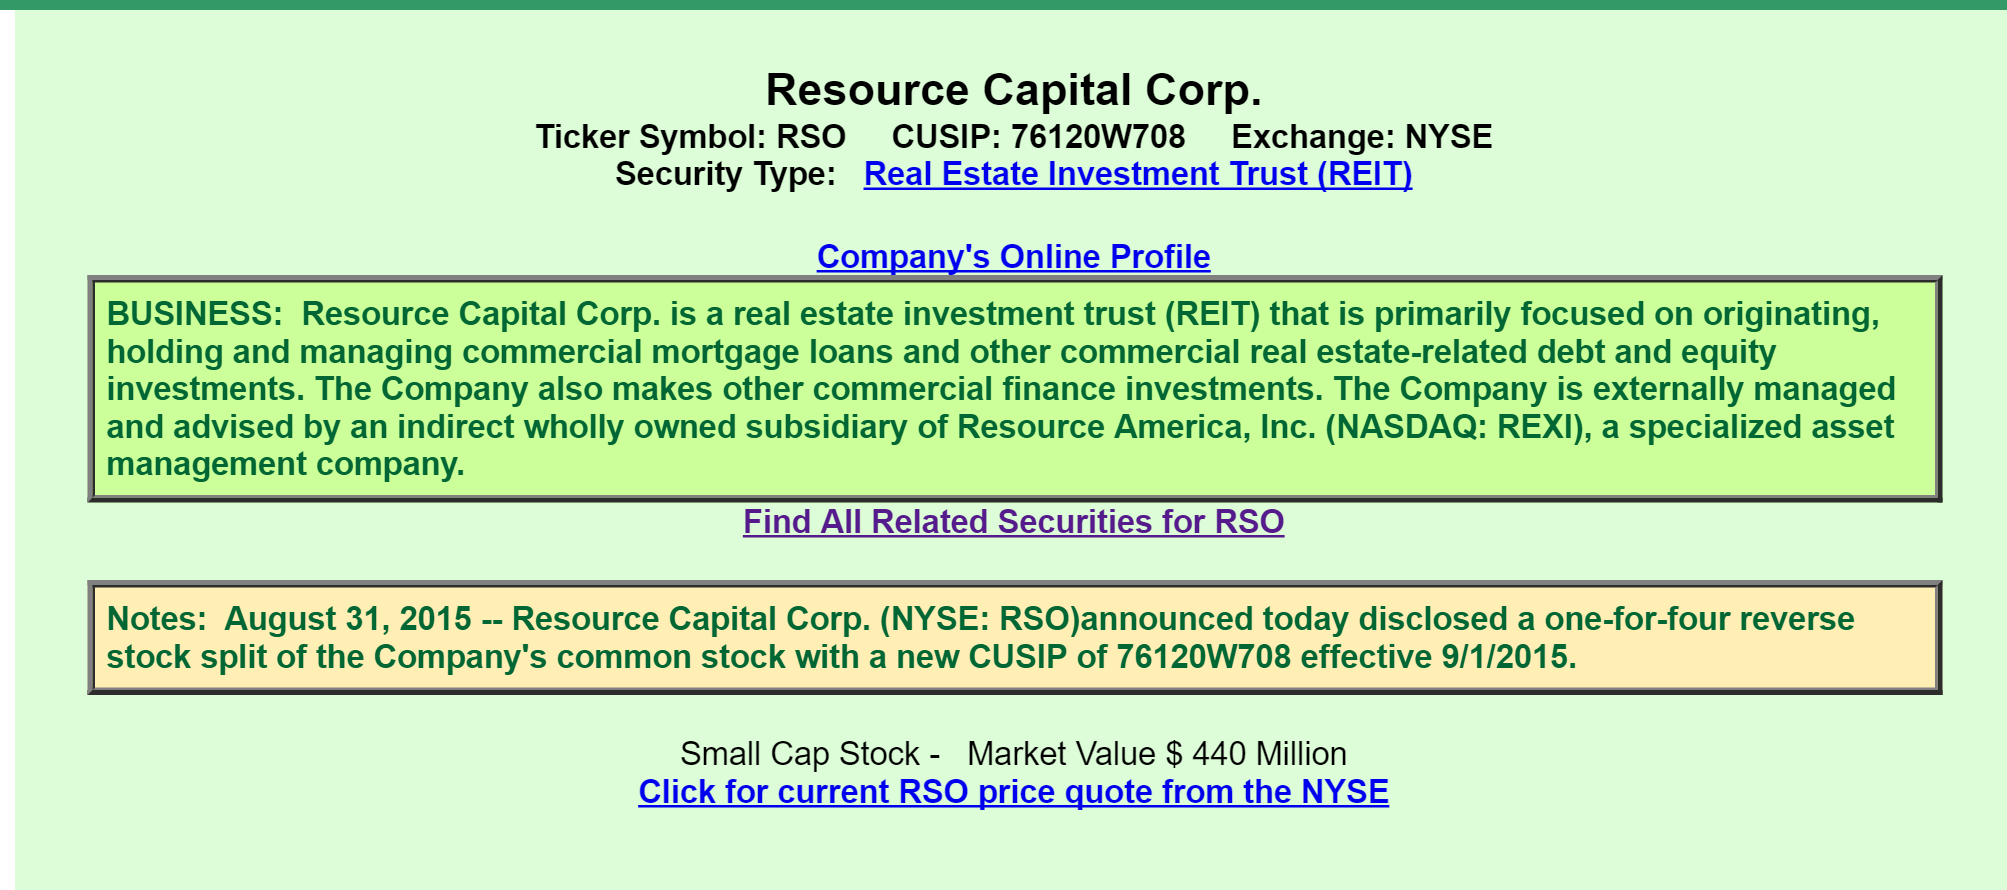 Resource capital a view from the perspective of a preferred a quick review informs us that resource capital listed as a diversified reit is a real estate finance company investing in real estate related loans biocorpaavc